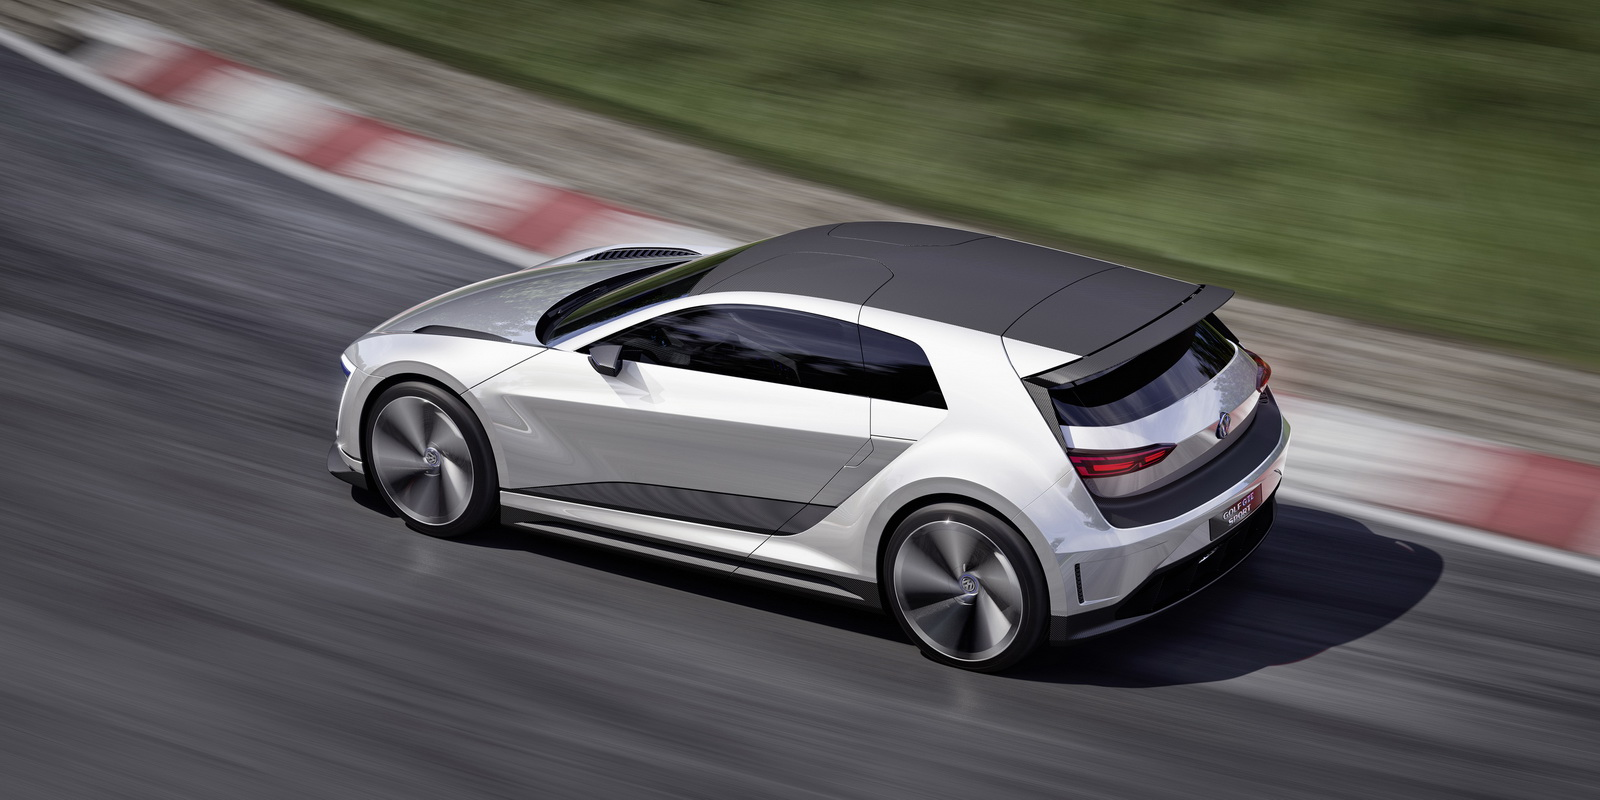 Vw Golf Viii >> Volkswagen previews plug-in hybrid tech for future Golf GTI with Golf GTE Sport Concept ...